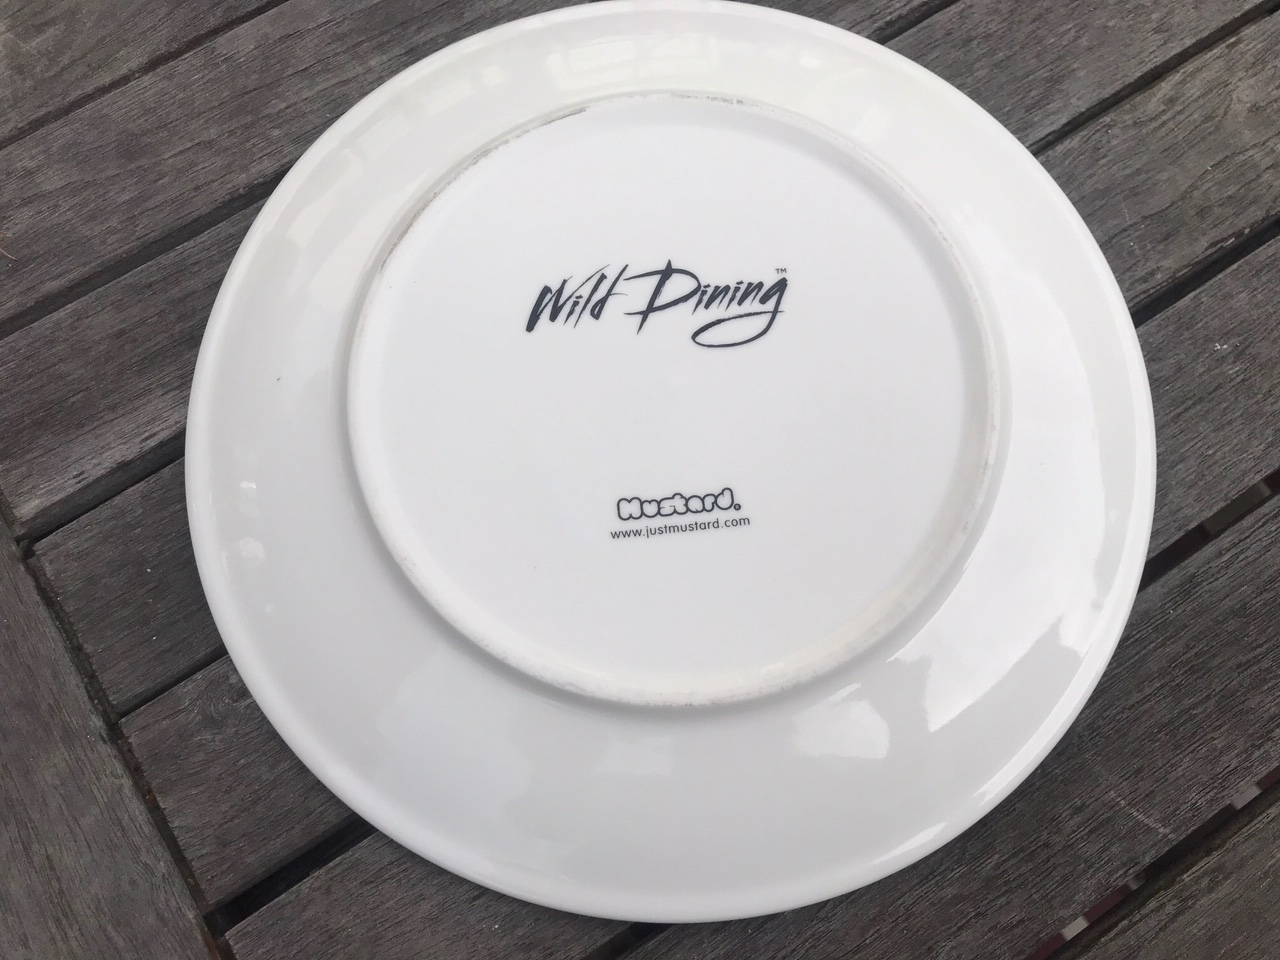 """New Wild Dining """"JustMustard"""" Brand Patricia Panda Plate: 28,800 ppm Lead when tested with an XRF instrument."""